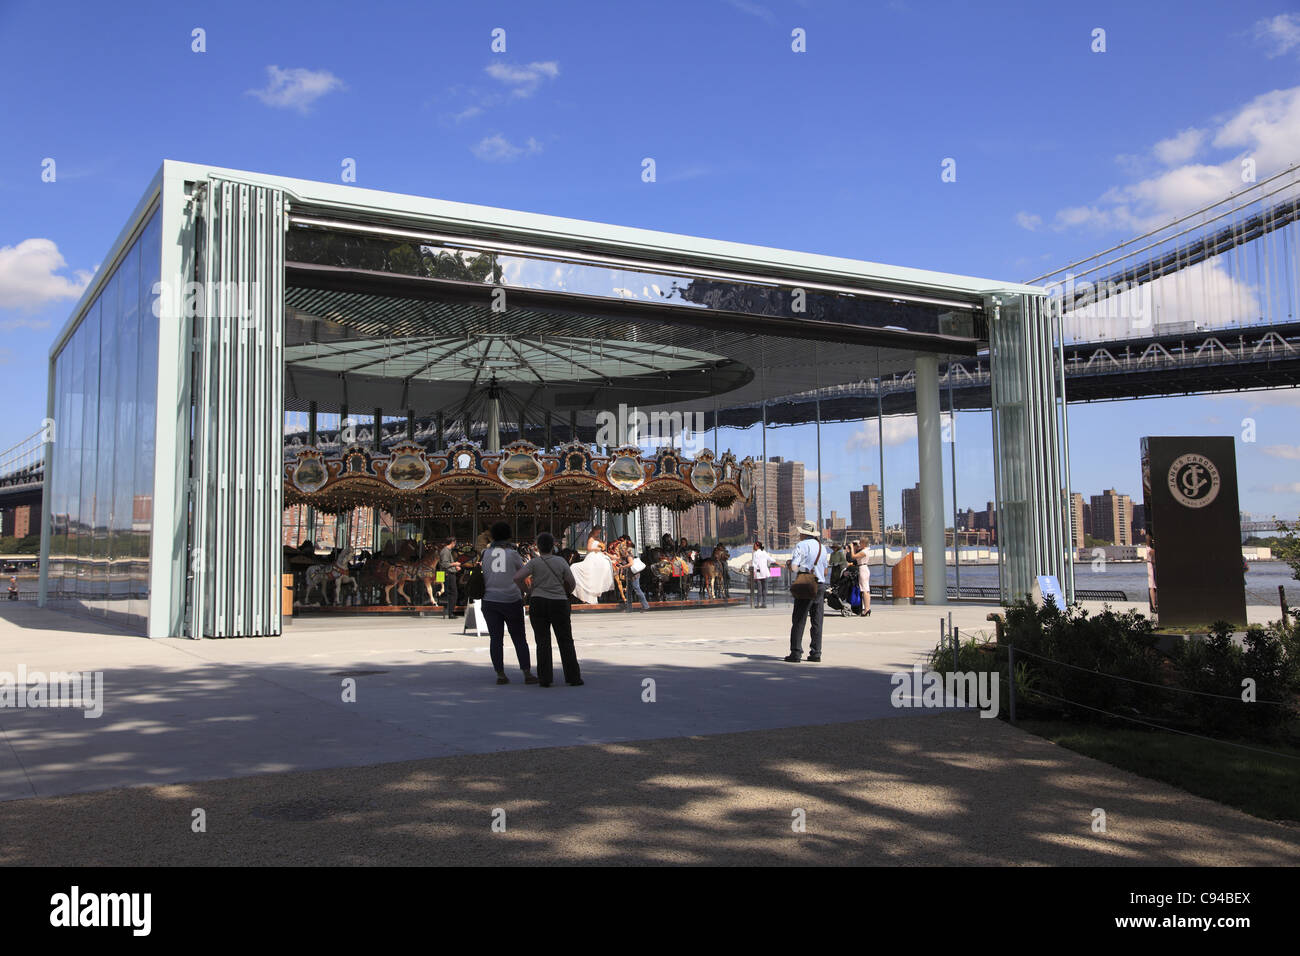 Jane's Carousel, Brooklyn Bridge Park, Dumbo (Down Under the Manhattan Bridge Overpass) Brooklyn, New York City, - Stock Image